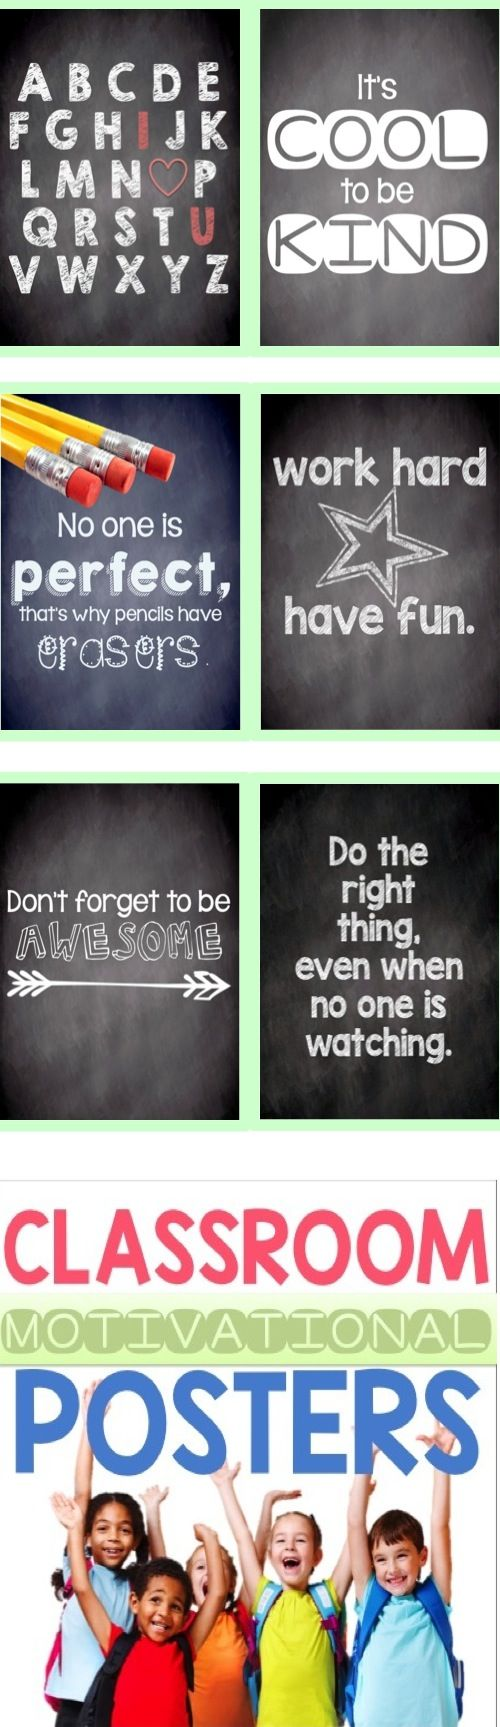 Classroom motivational posters :) in color, black and white, and chalkboard style